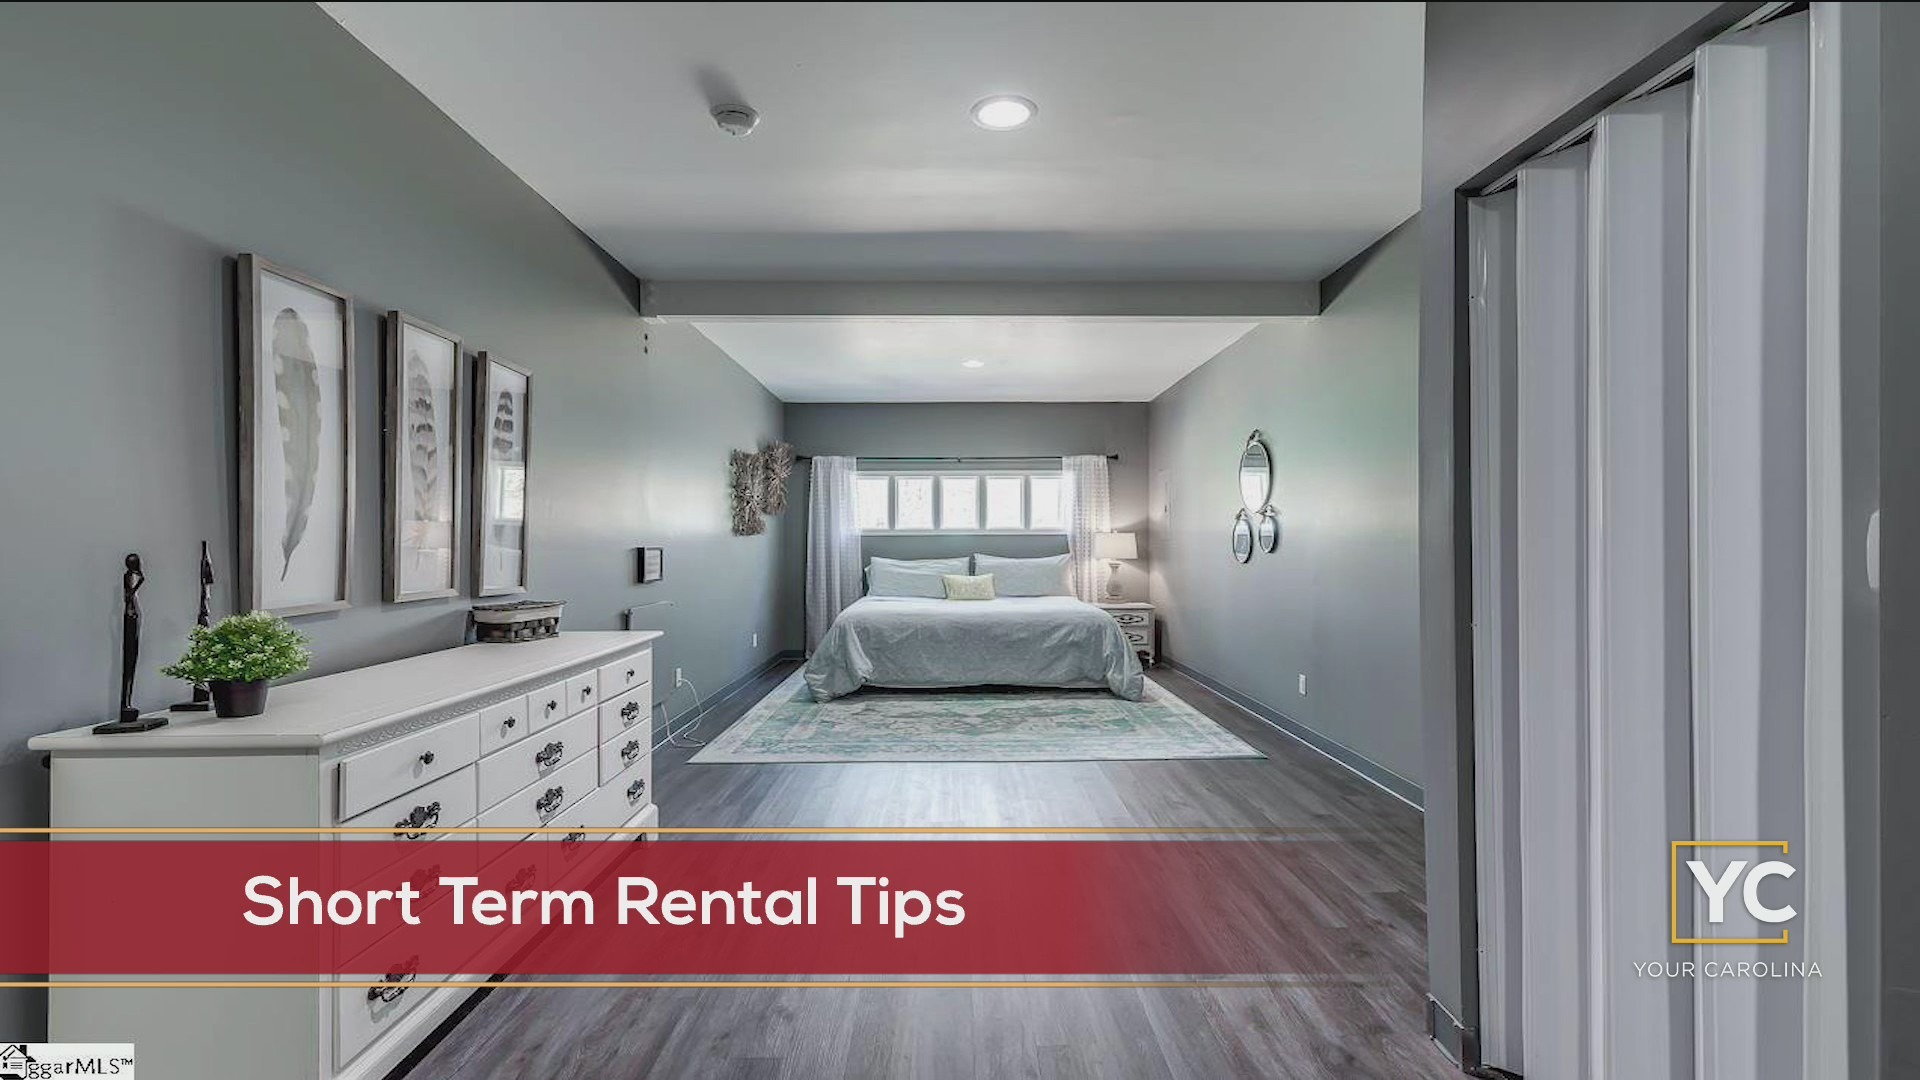 Upstate Homes - Short Term Rental Tips